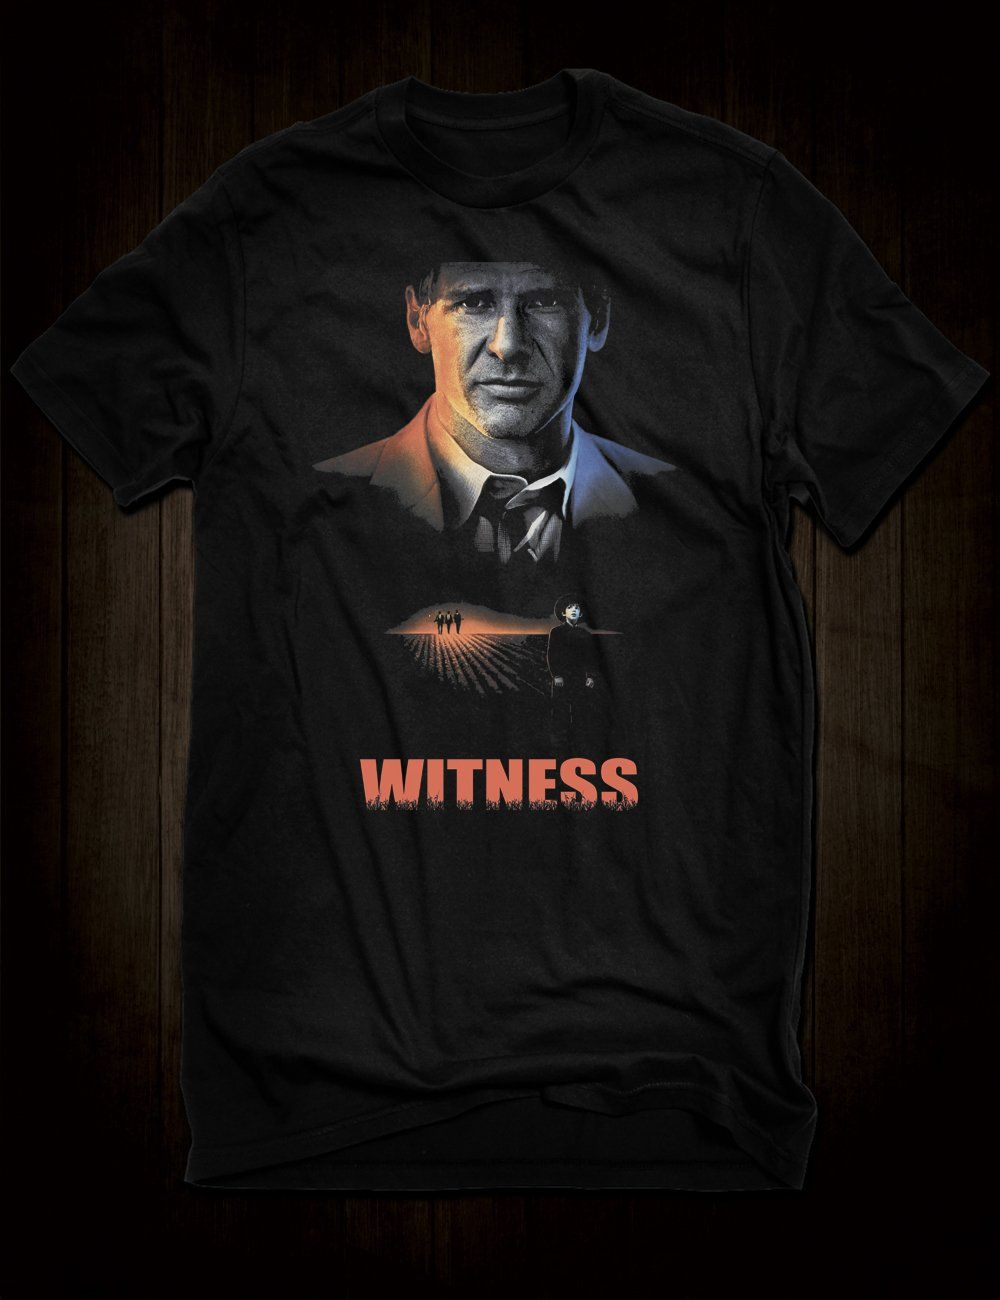 b6336fe518ef3 Harrison Ford Witness T-Shirt - Gents   Small